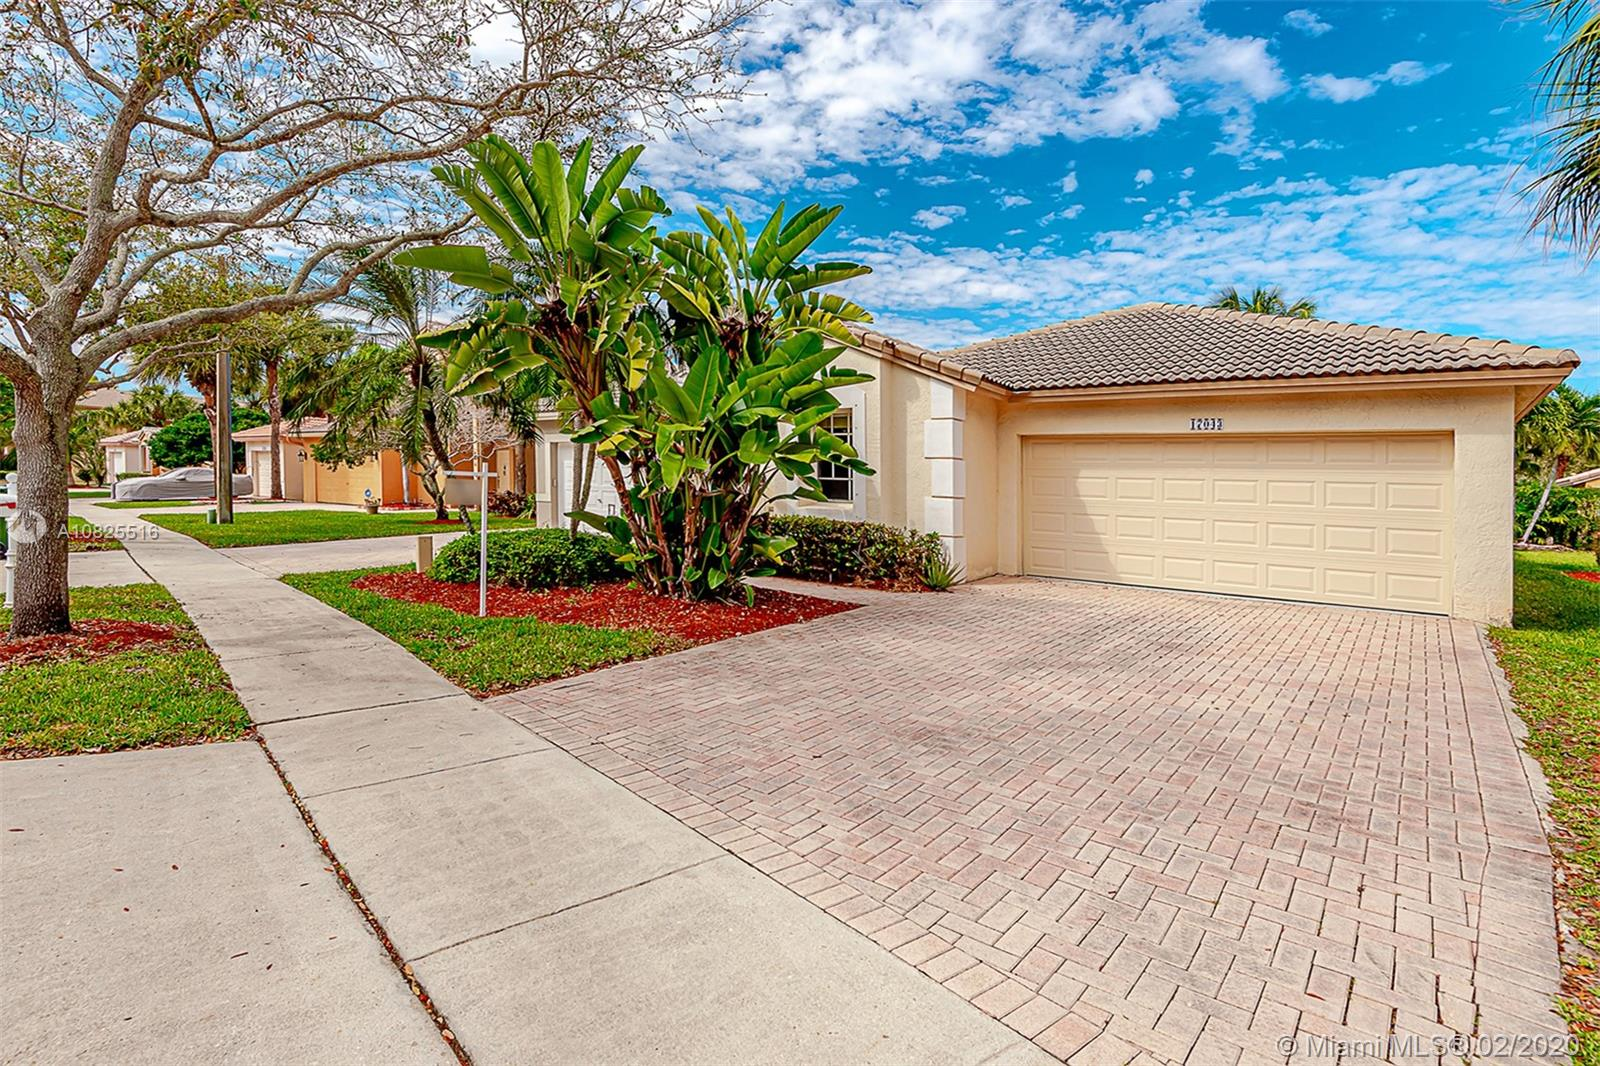 NATURAL LIGHT-FLOODED 3 bed / 2 bath in the resort style community of Pembroke Isles. Wood laminate throughout the main living areas and tiles in kitchen and bathrooms. KITCHEN was remodeled in 2018. NEW AC 2019. All interior walls and ceiling were smoothed down so NO POPCORN! Walking distance to high rated Panther Run Elementary. Great Middle and Highschool. 